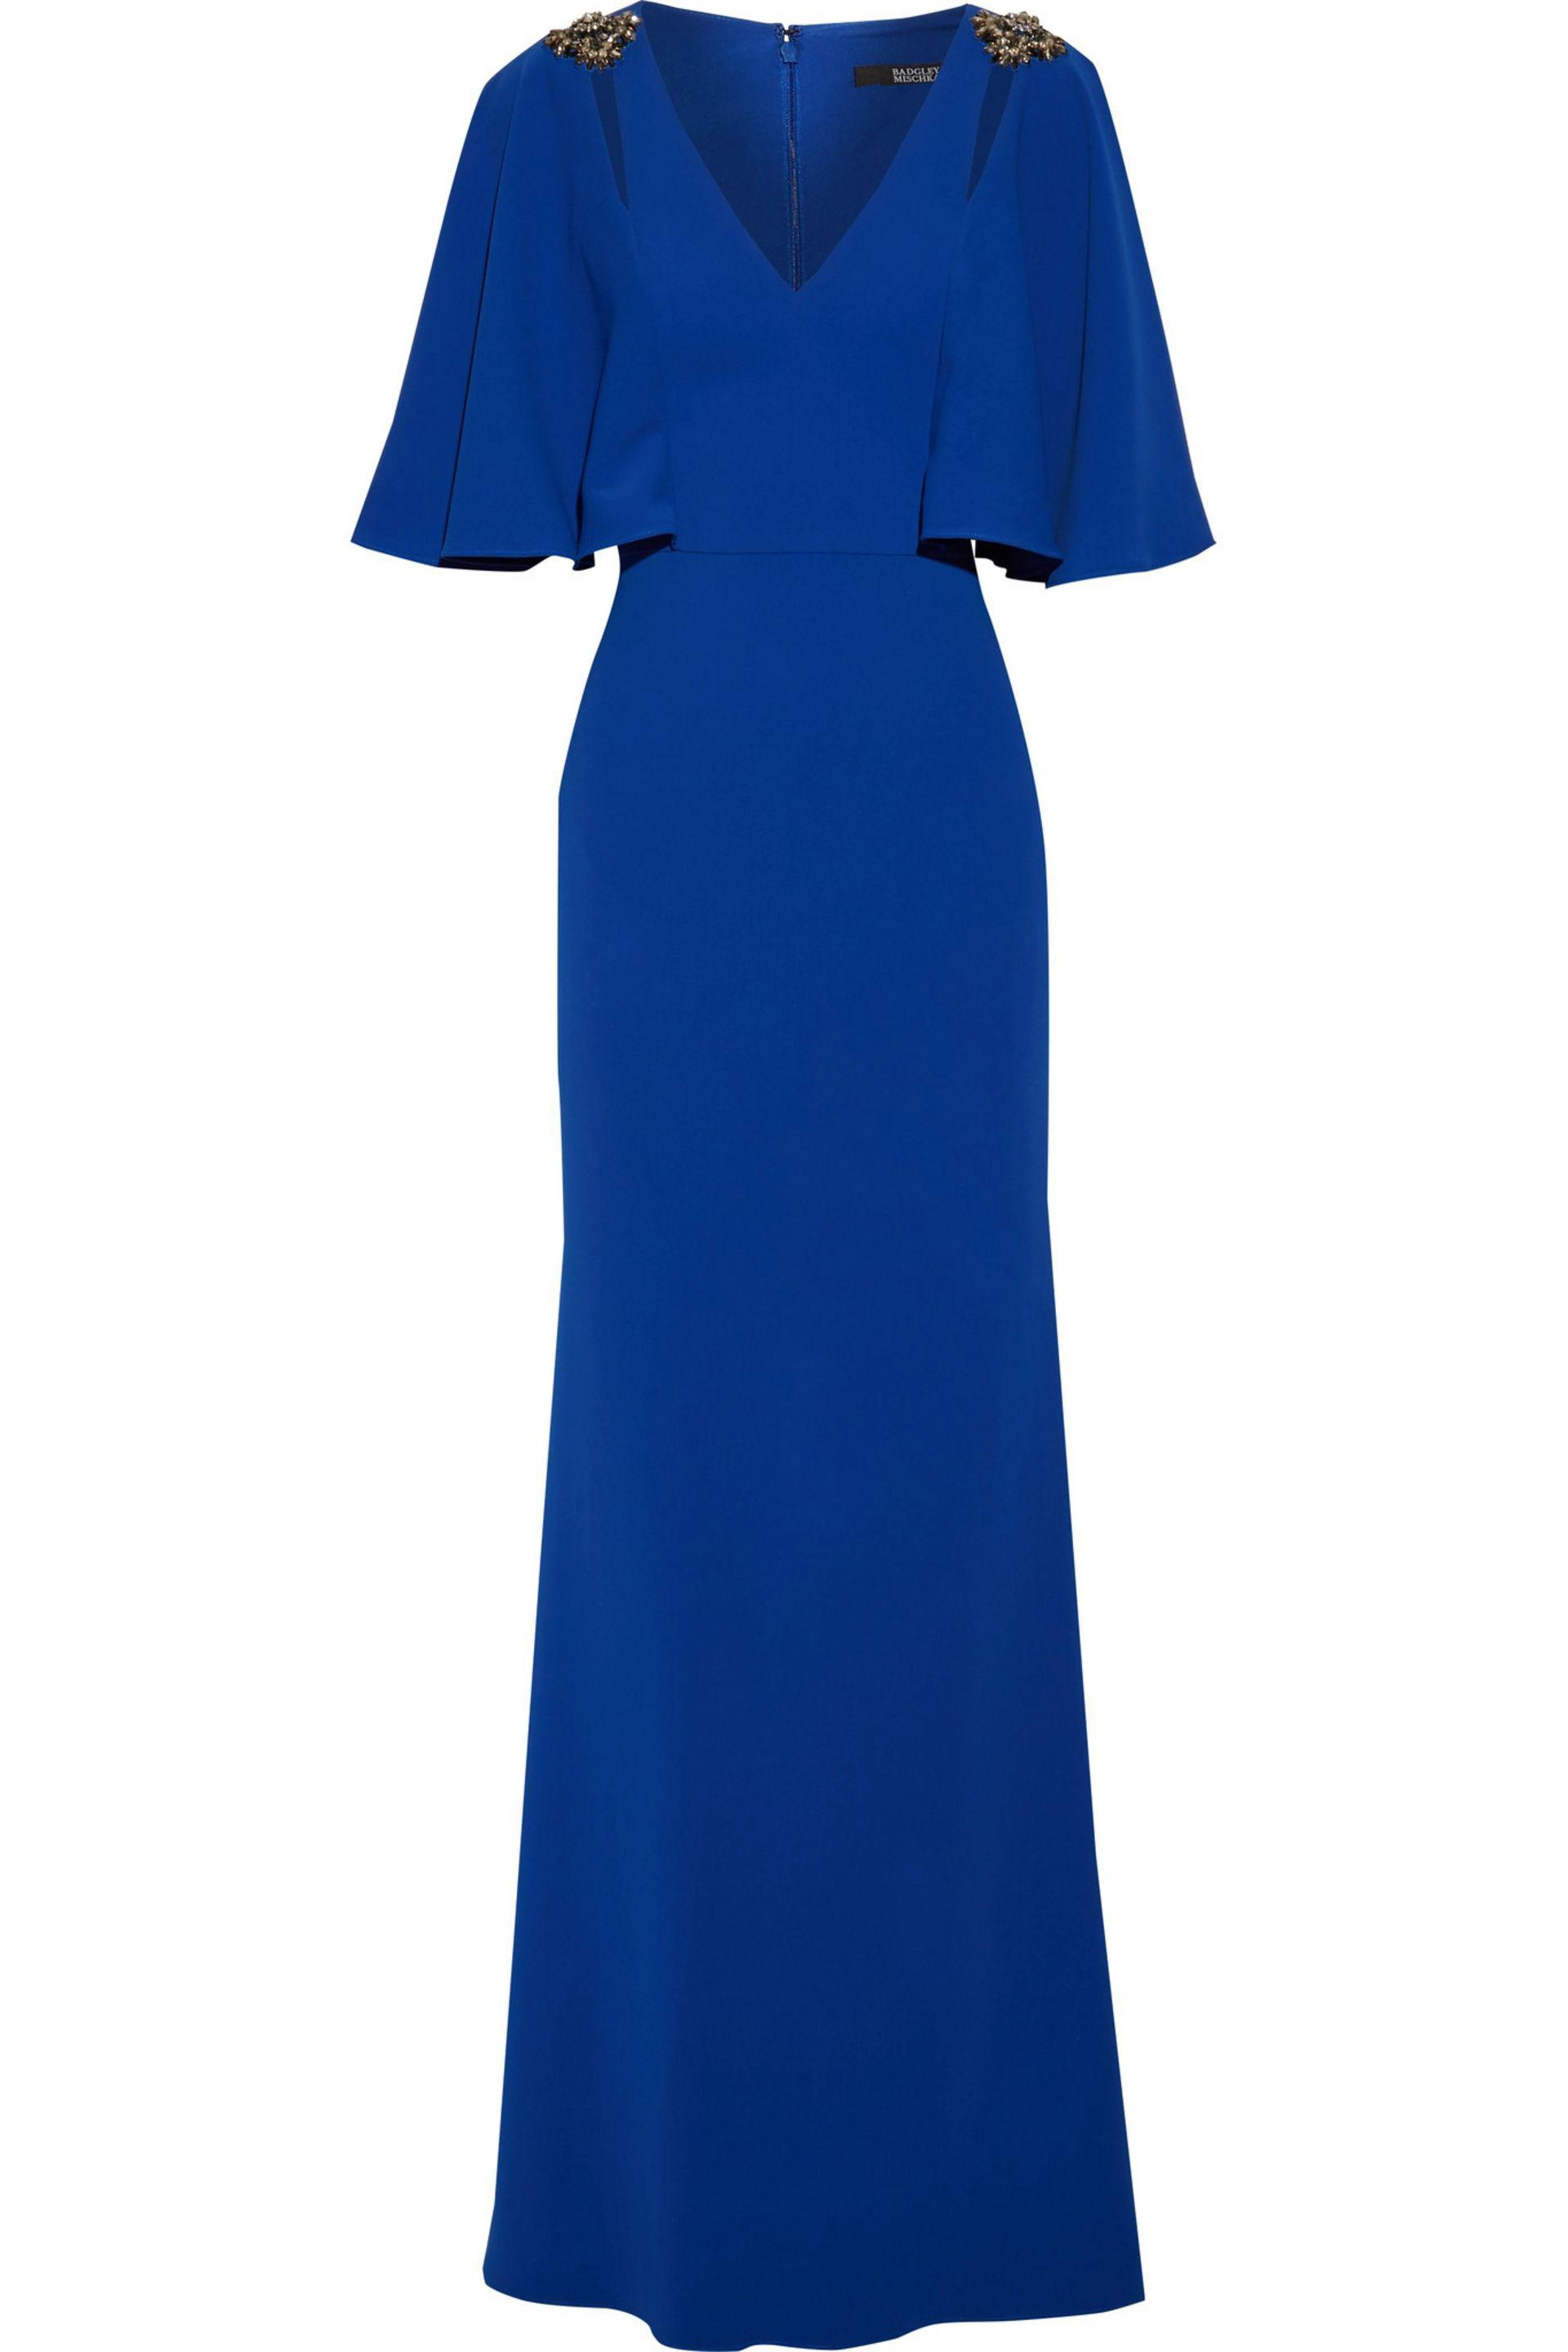 Badgley Mischka. Women's Blue Fluted Embellished Stretch-cady Gown